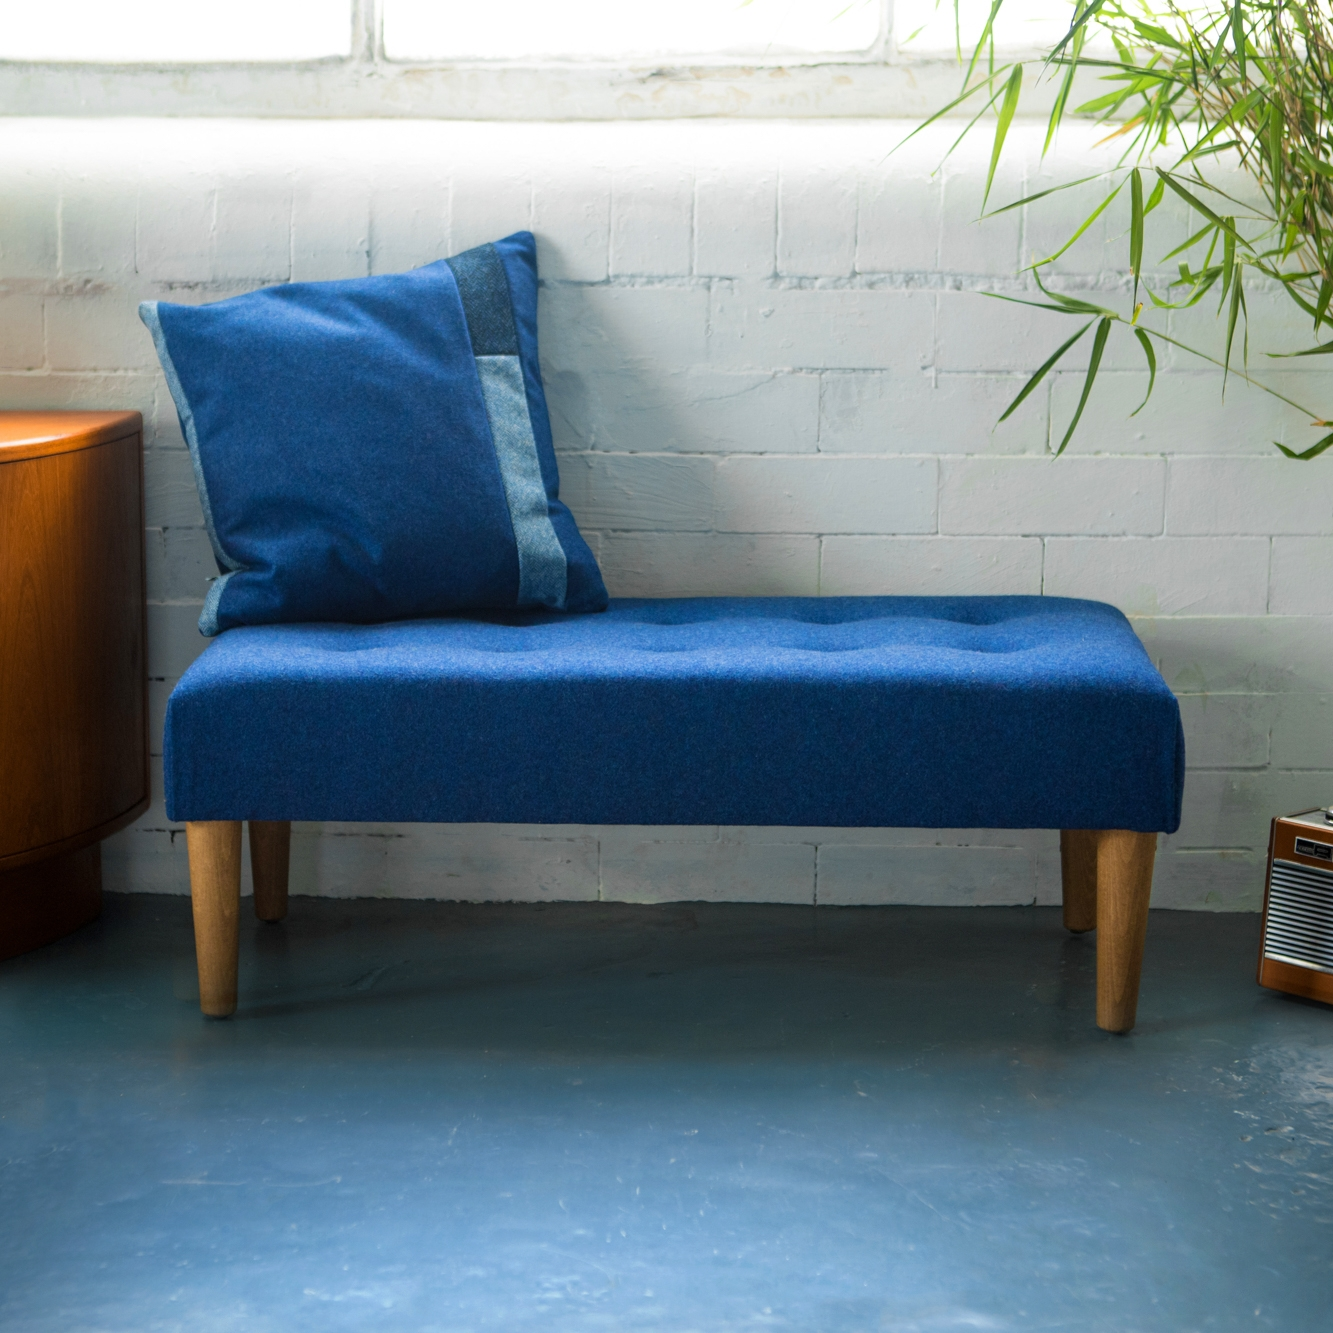 Classic Footstool Large - A wider footstool version that works as a bench too!